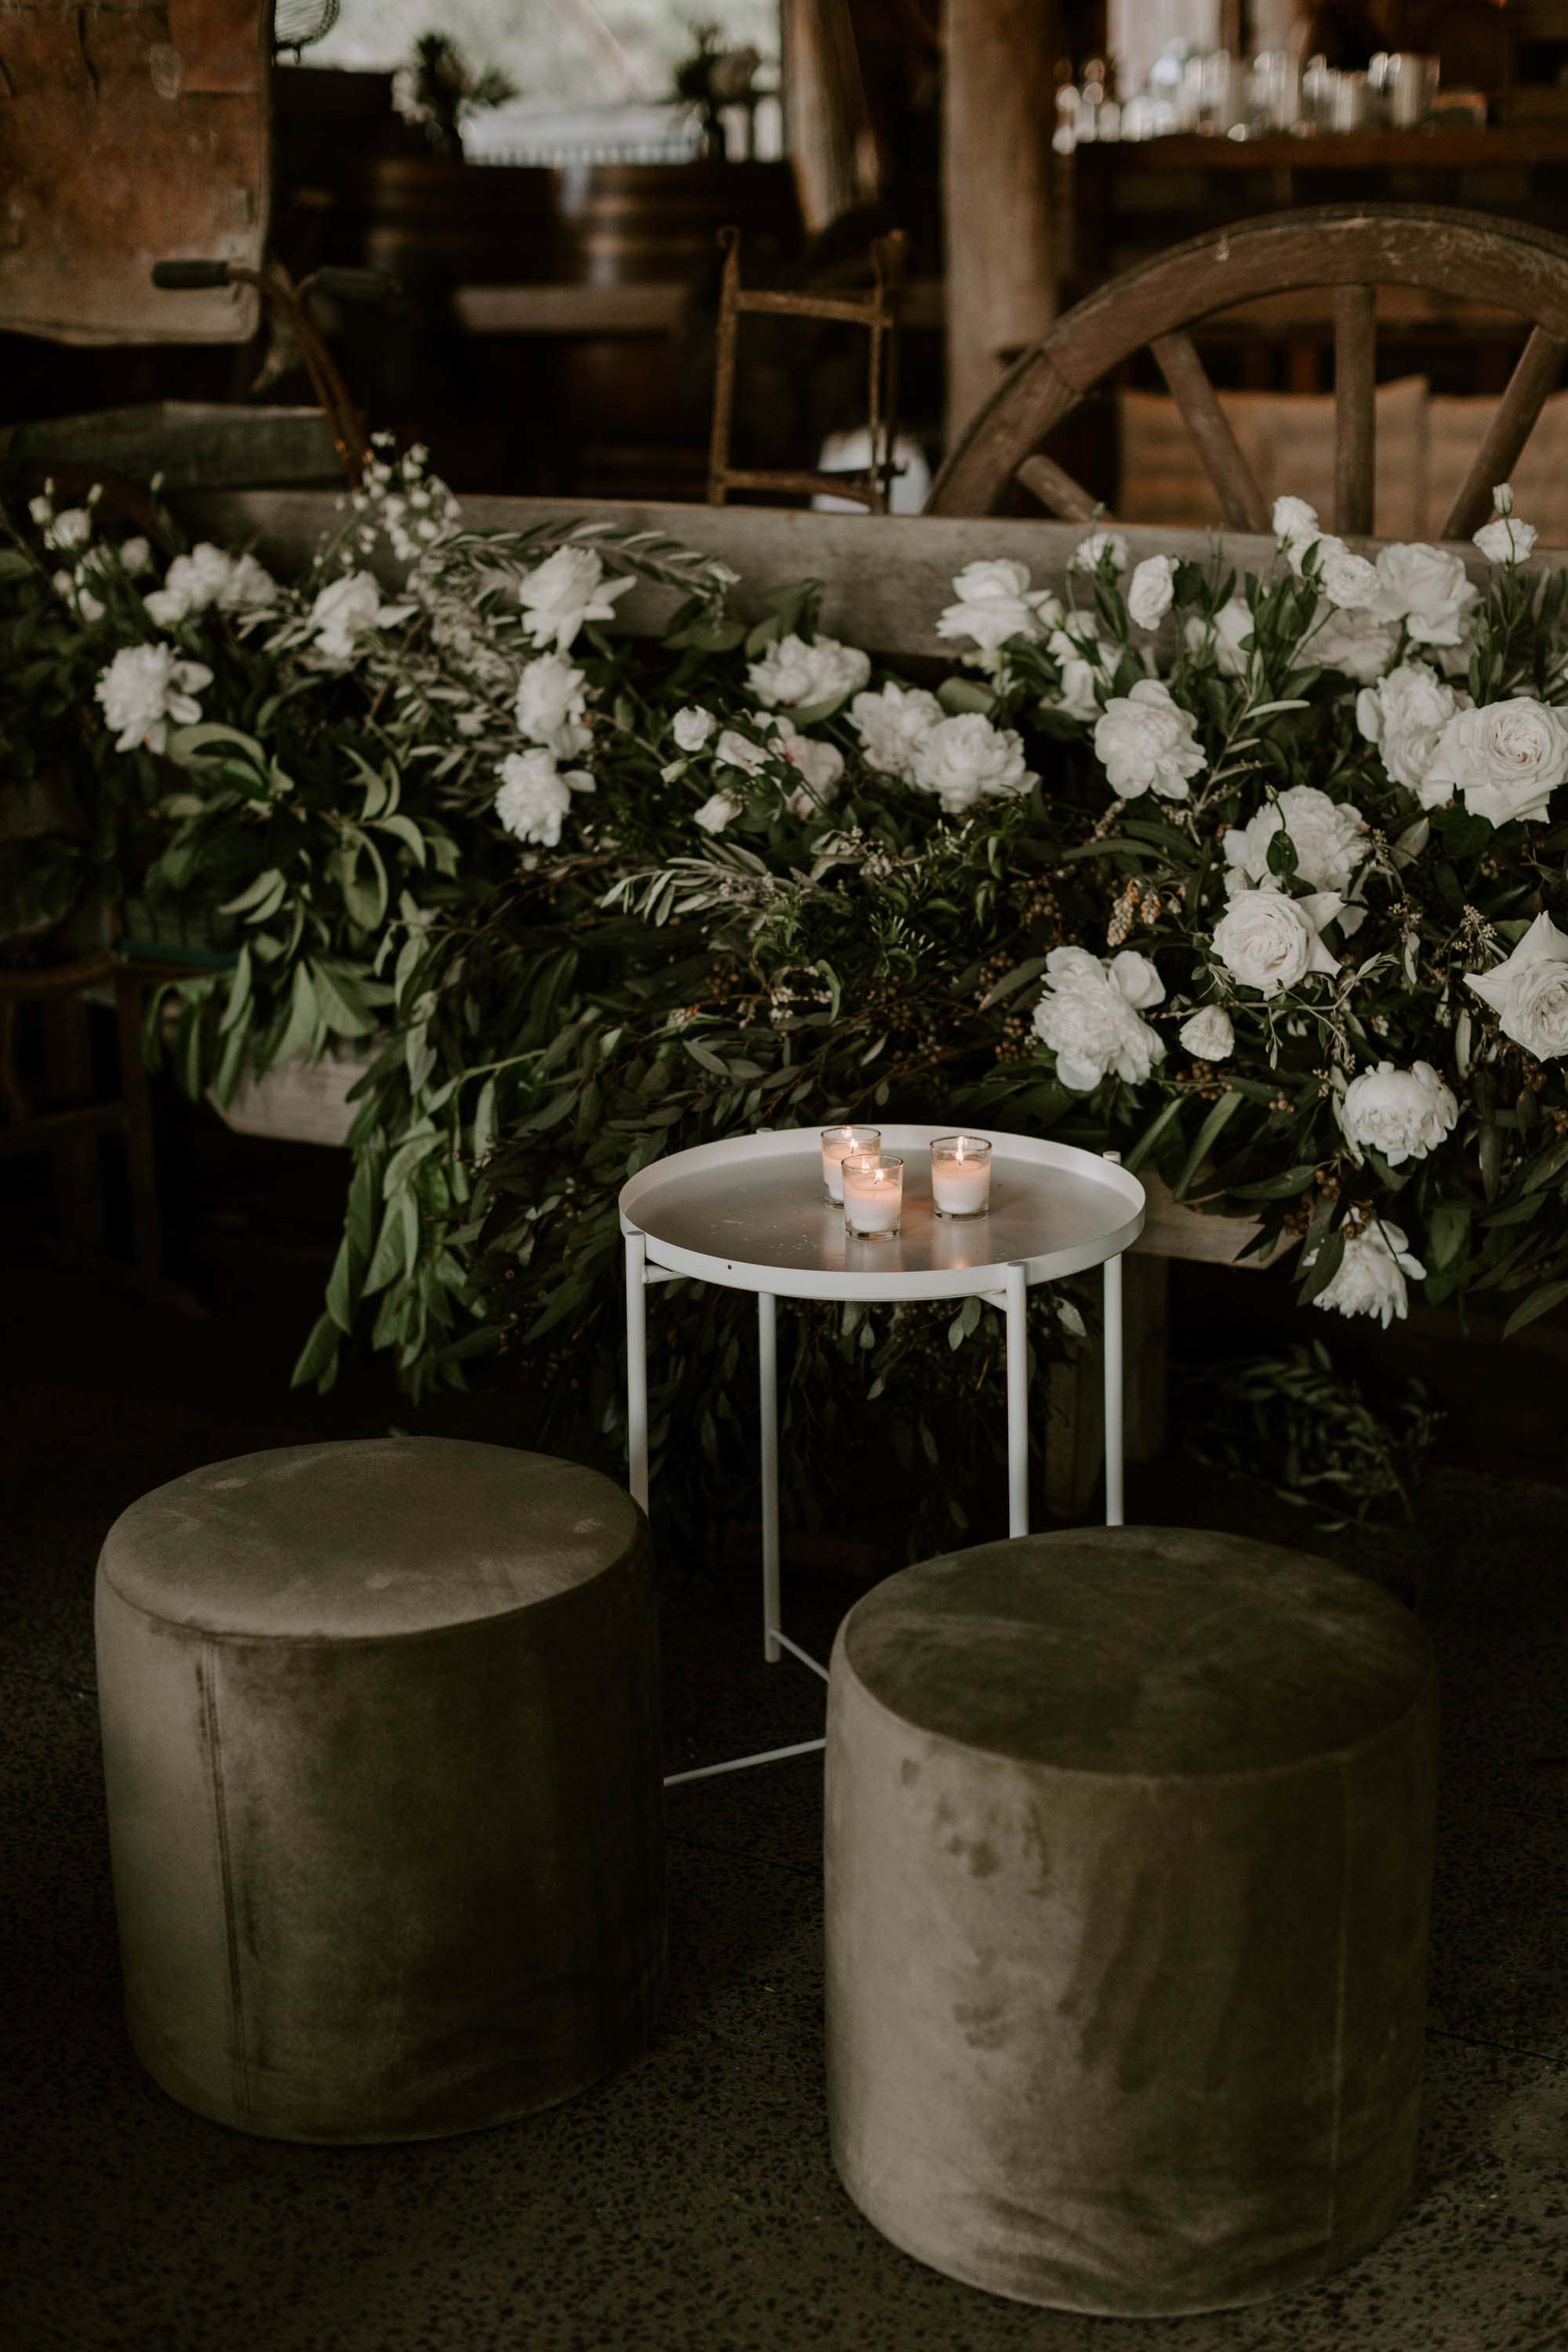 Chill out area flowers featuring white roses